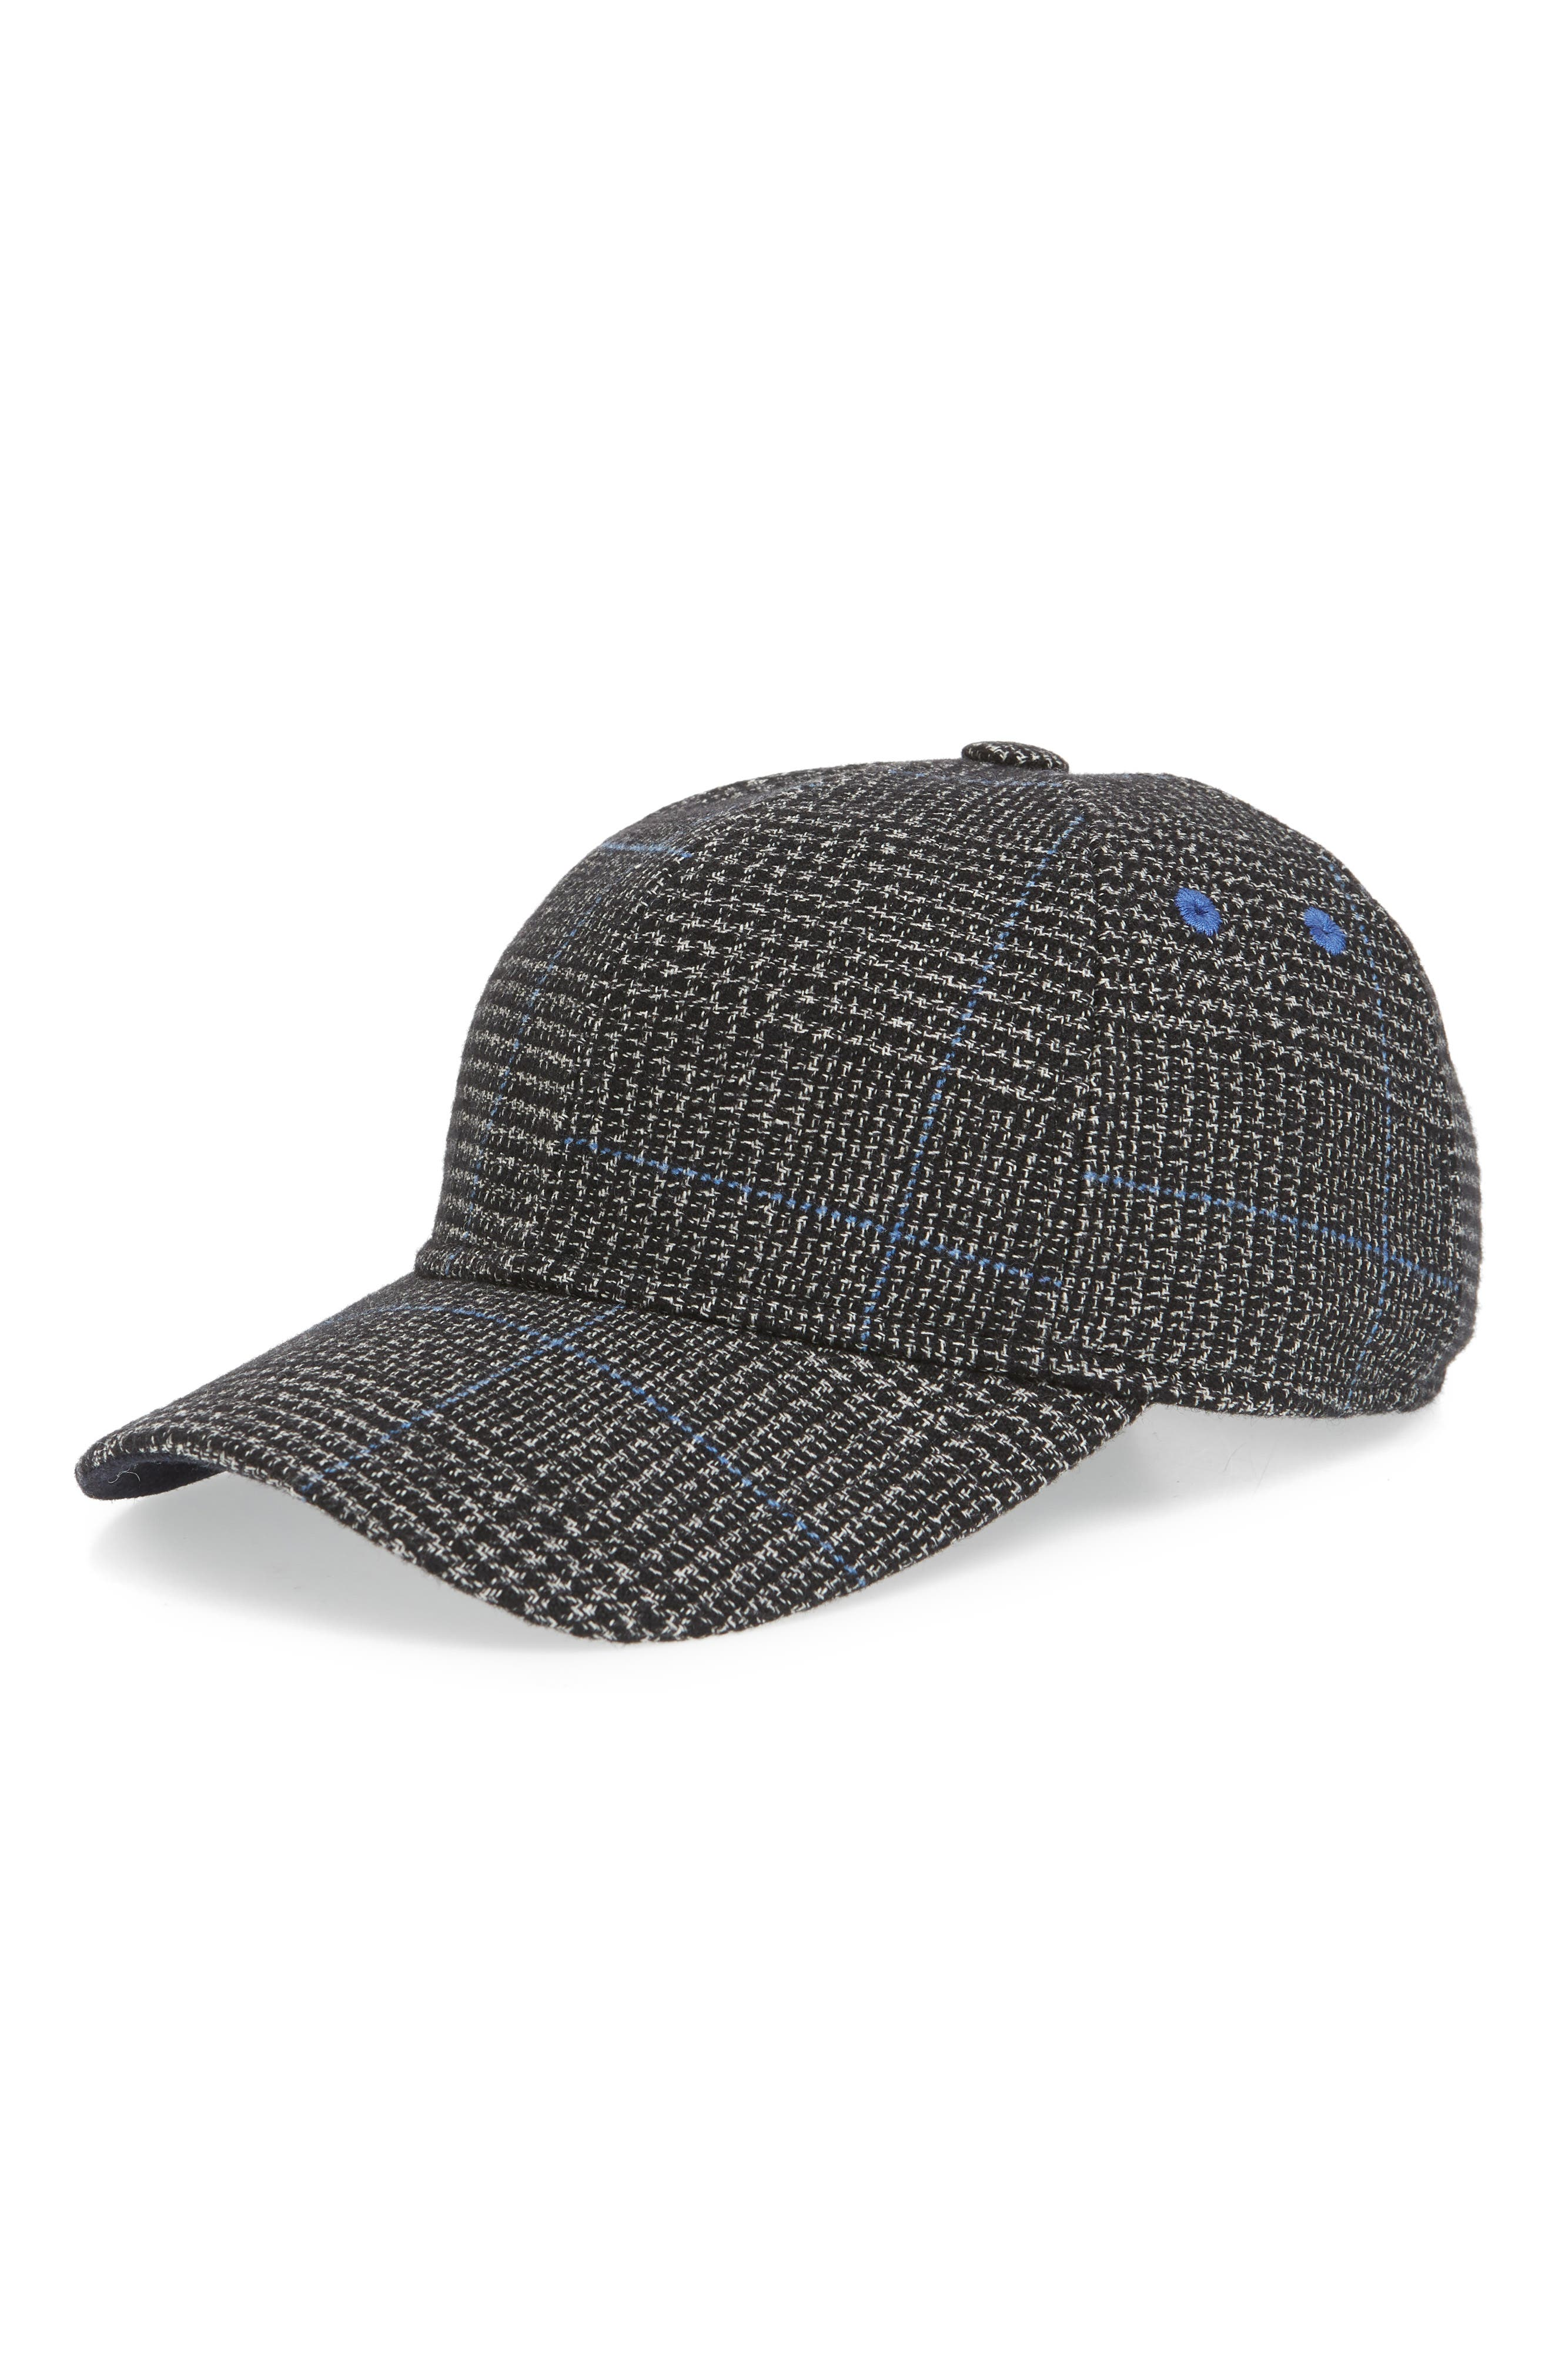 a344b24340a87 discount code for ted baker london graphic check baseball cap 91136 5a971